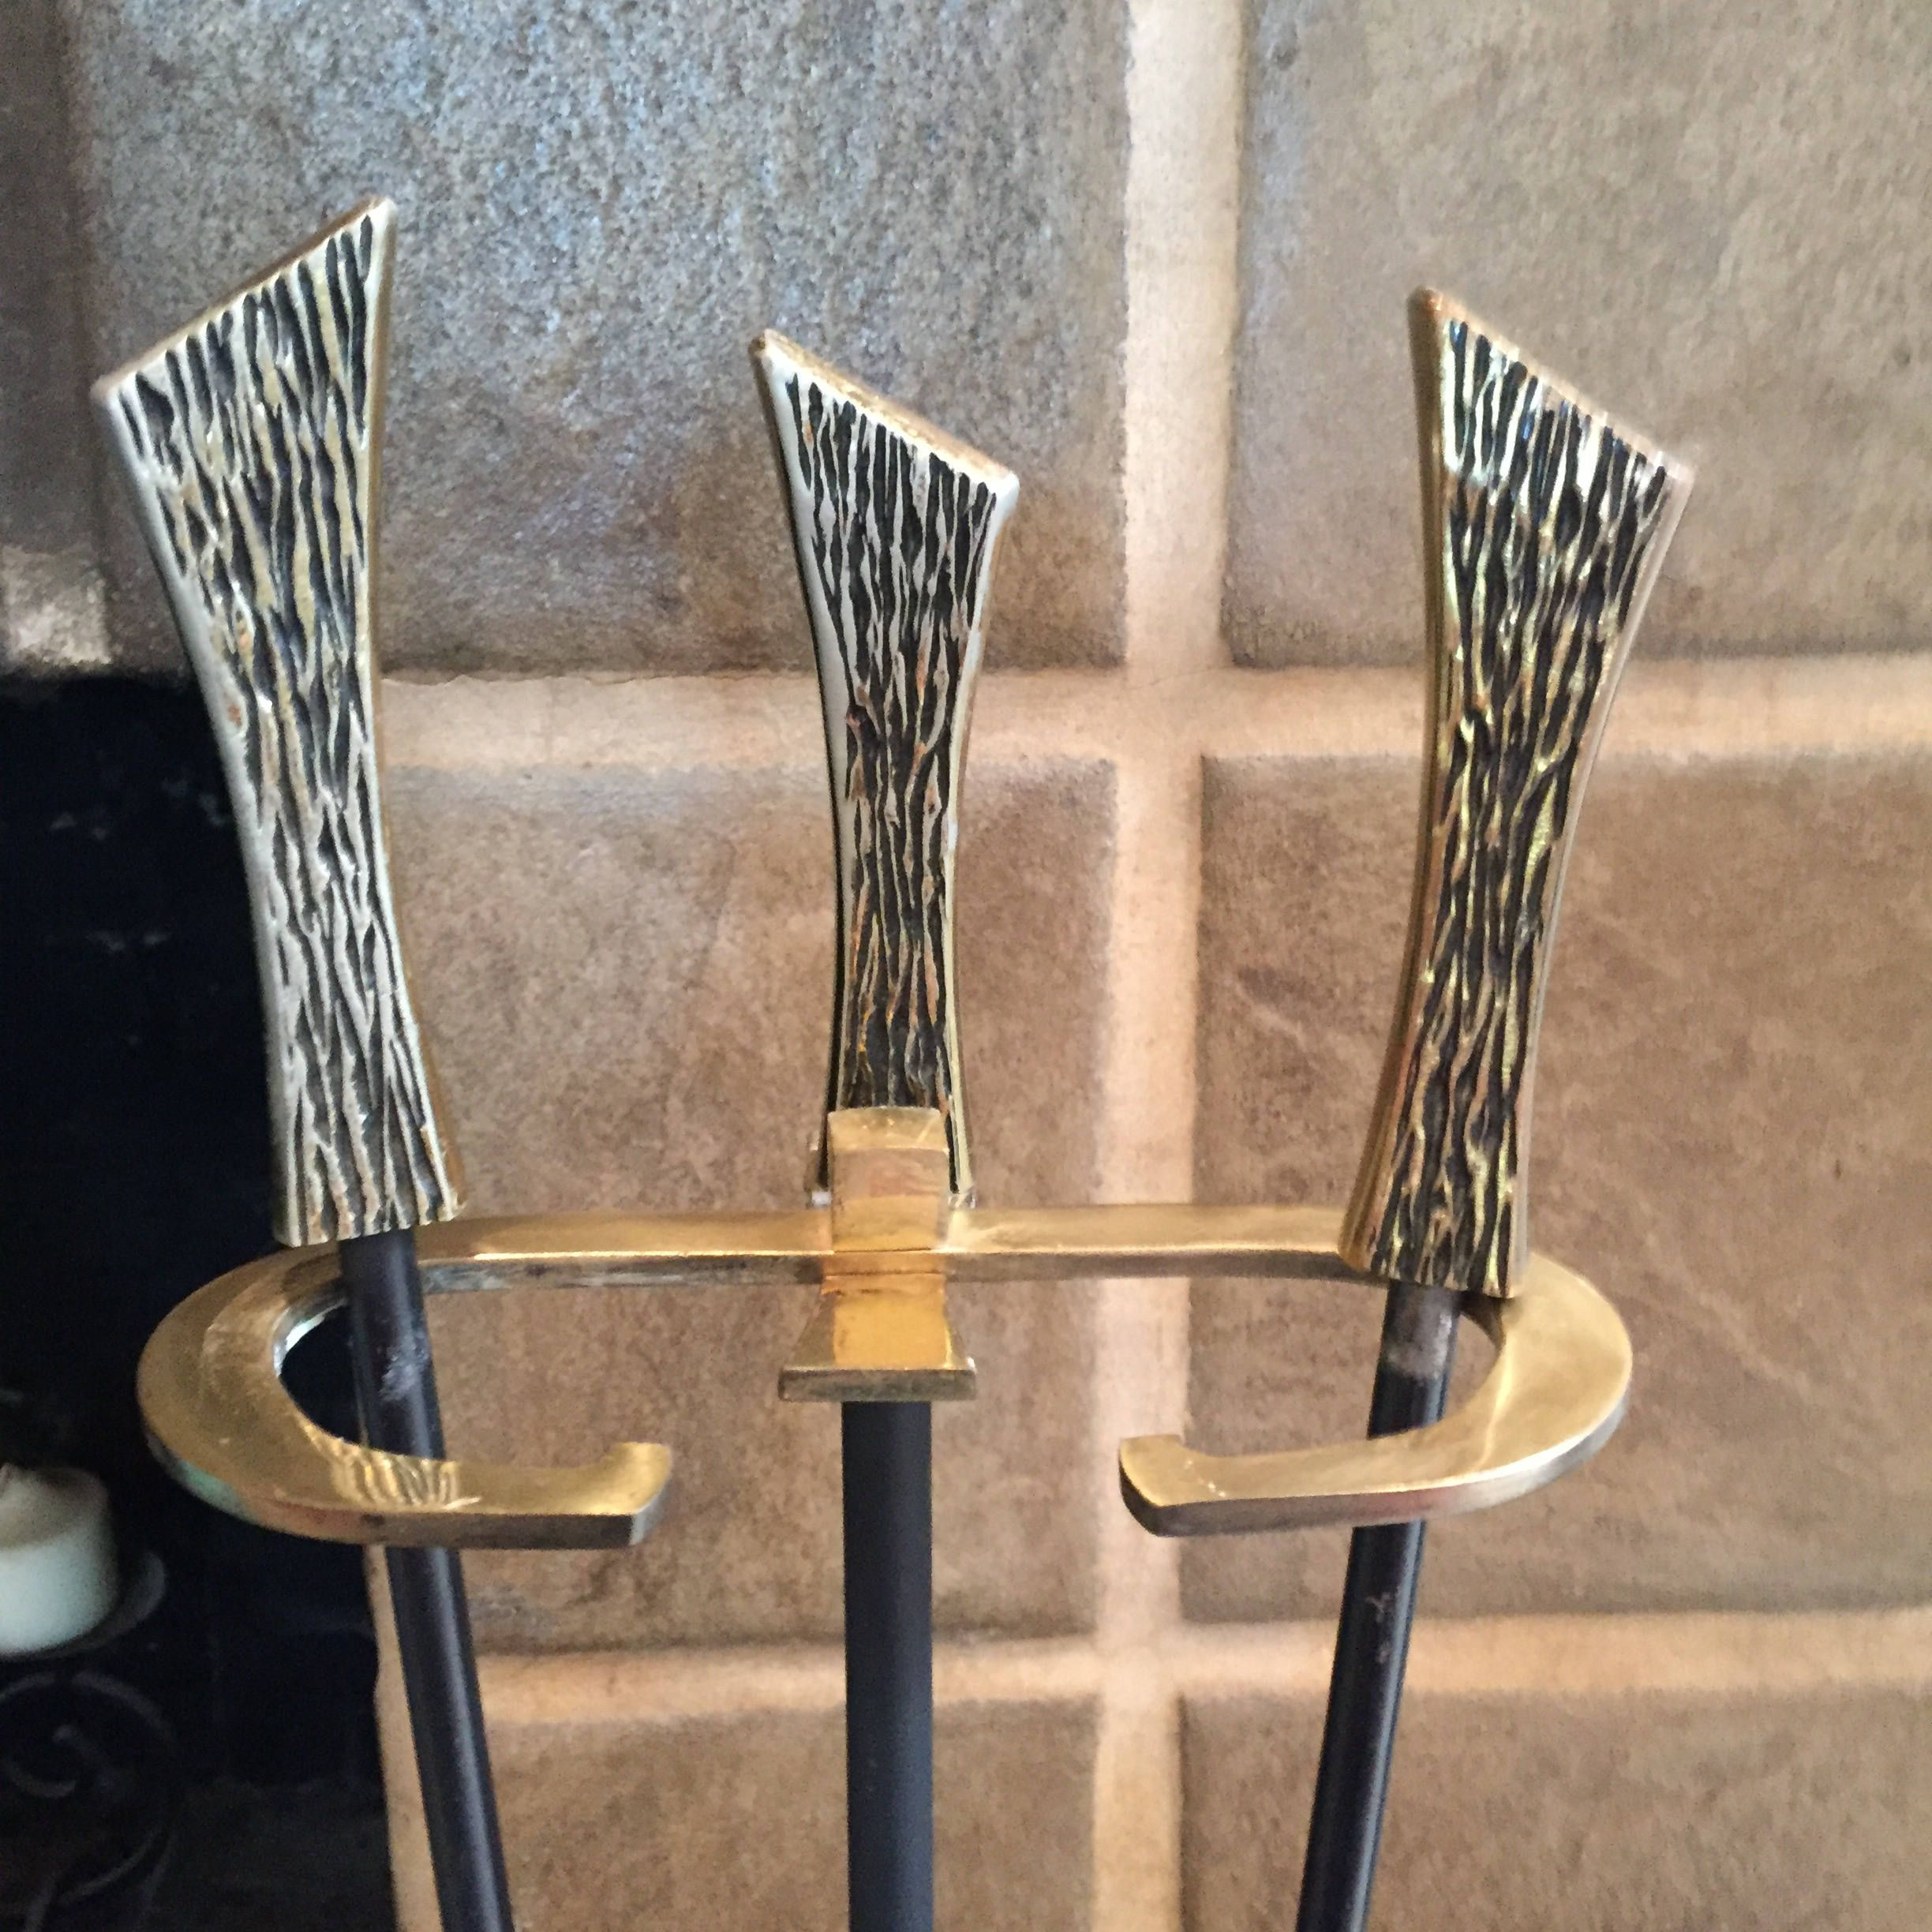 Vintage Modern Fireplace Tool Set With Fancy Cast Brass Handles Modern Fireplace Tools Fireplace Tool Set Fireplace Tools